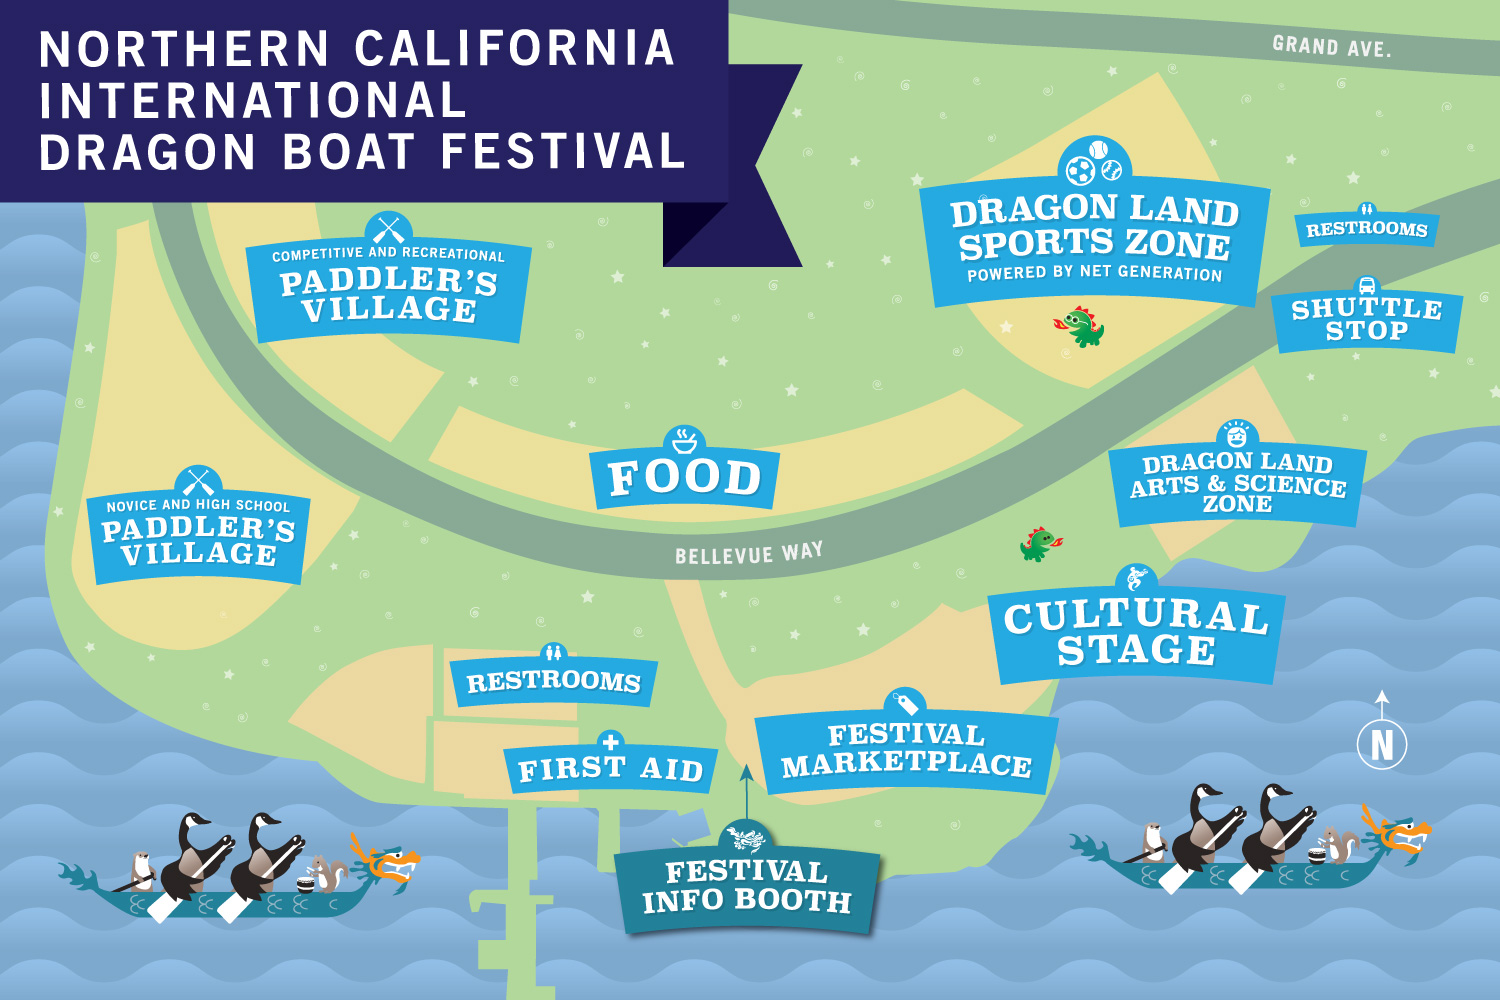 Northern California International Dragon Boat Festival